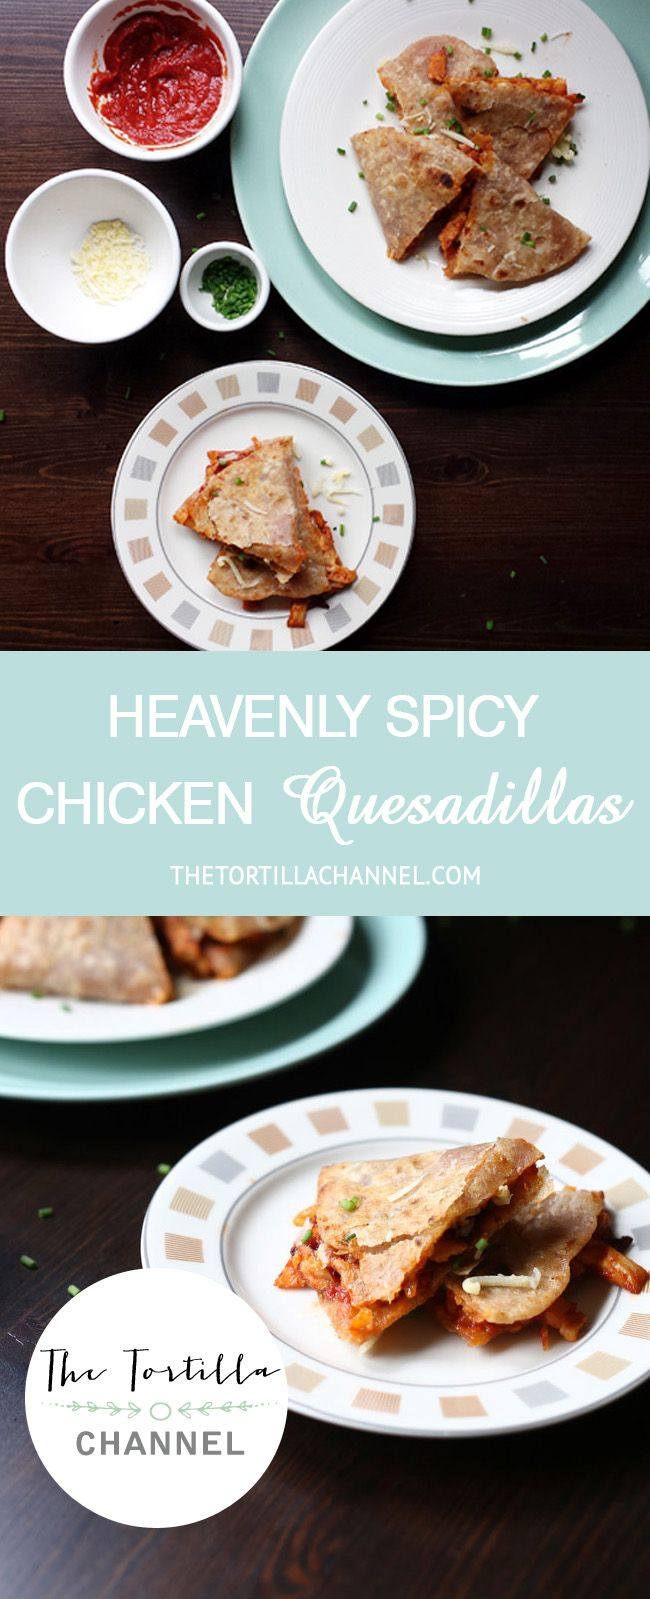 These heavenly hearty spicy chicken quesadillas are great for lunch. An easy recipe with home made flour tortillas so delicious. #recipe #quesadilla #chicken #tortilla #homemade #tasty #delicious #lunch